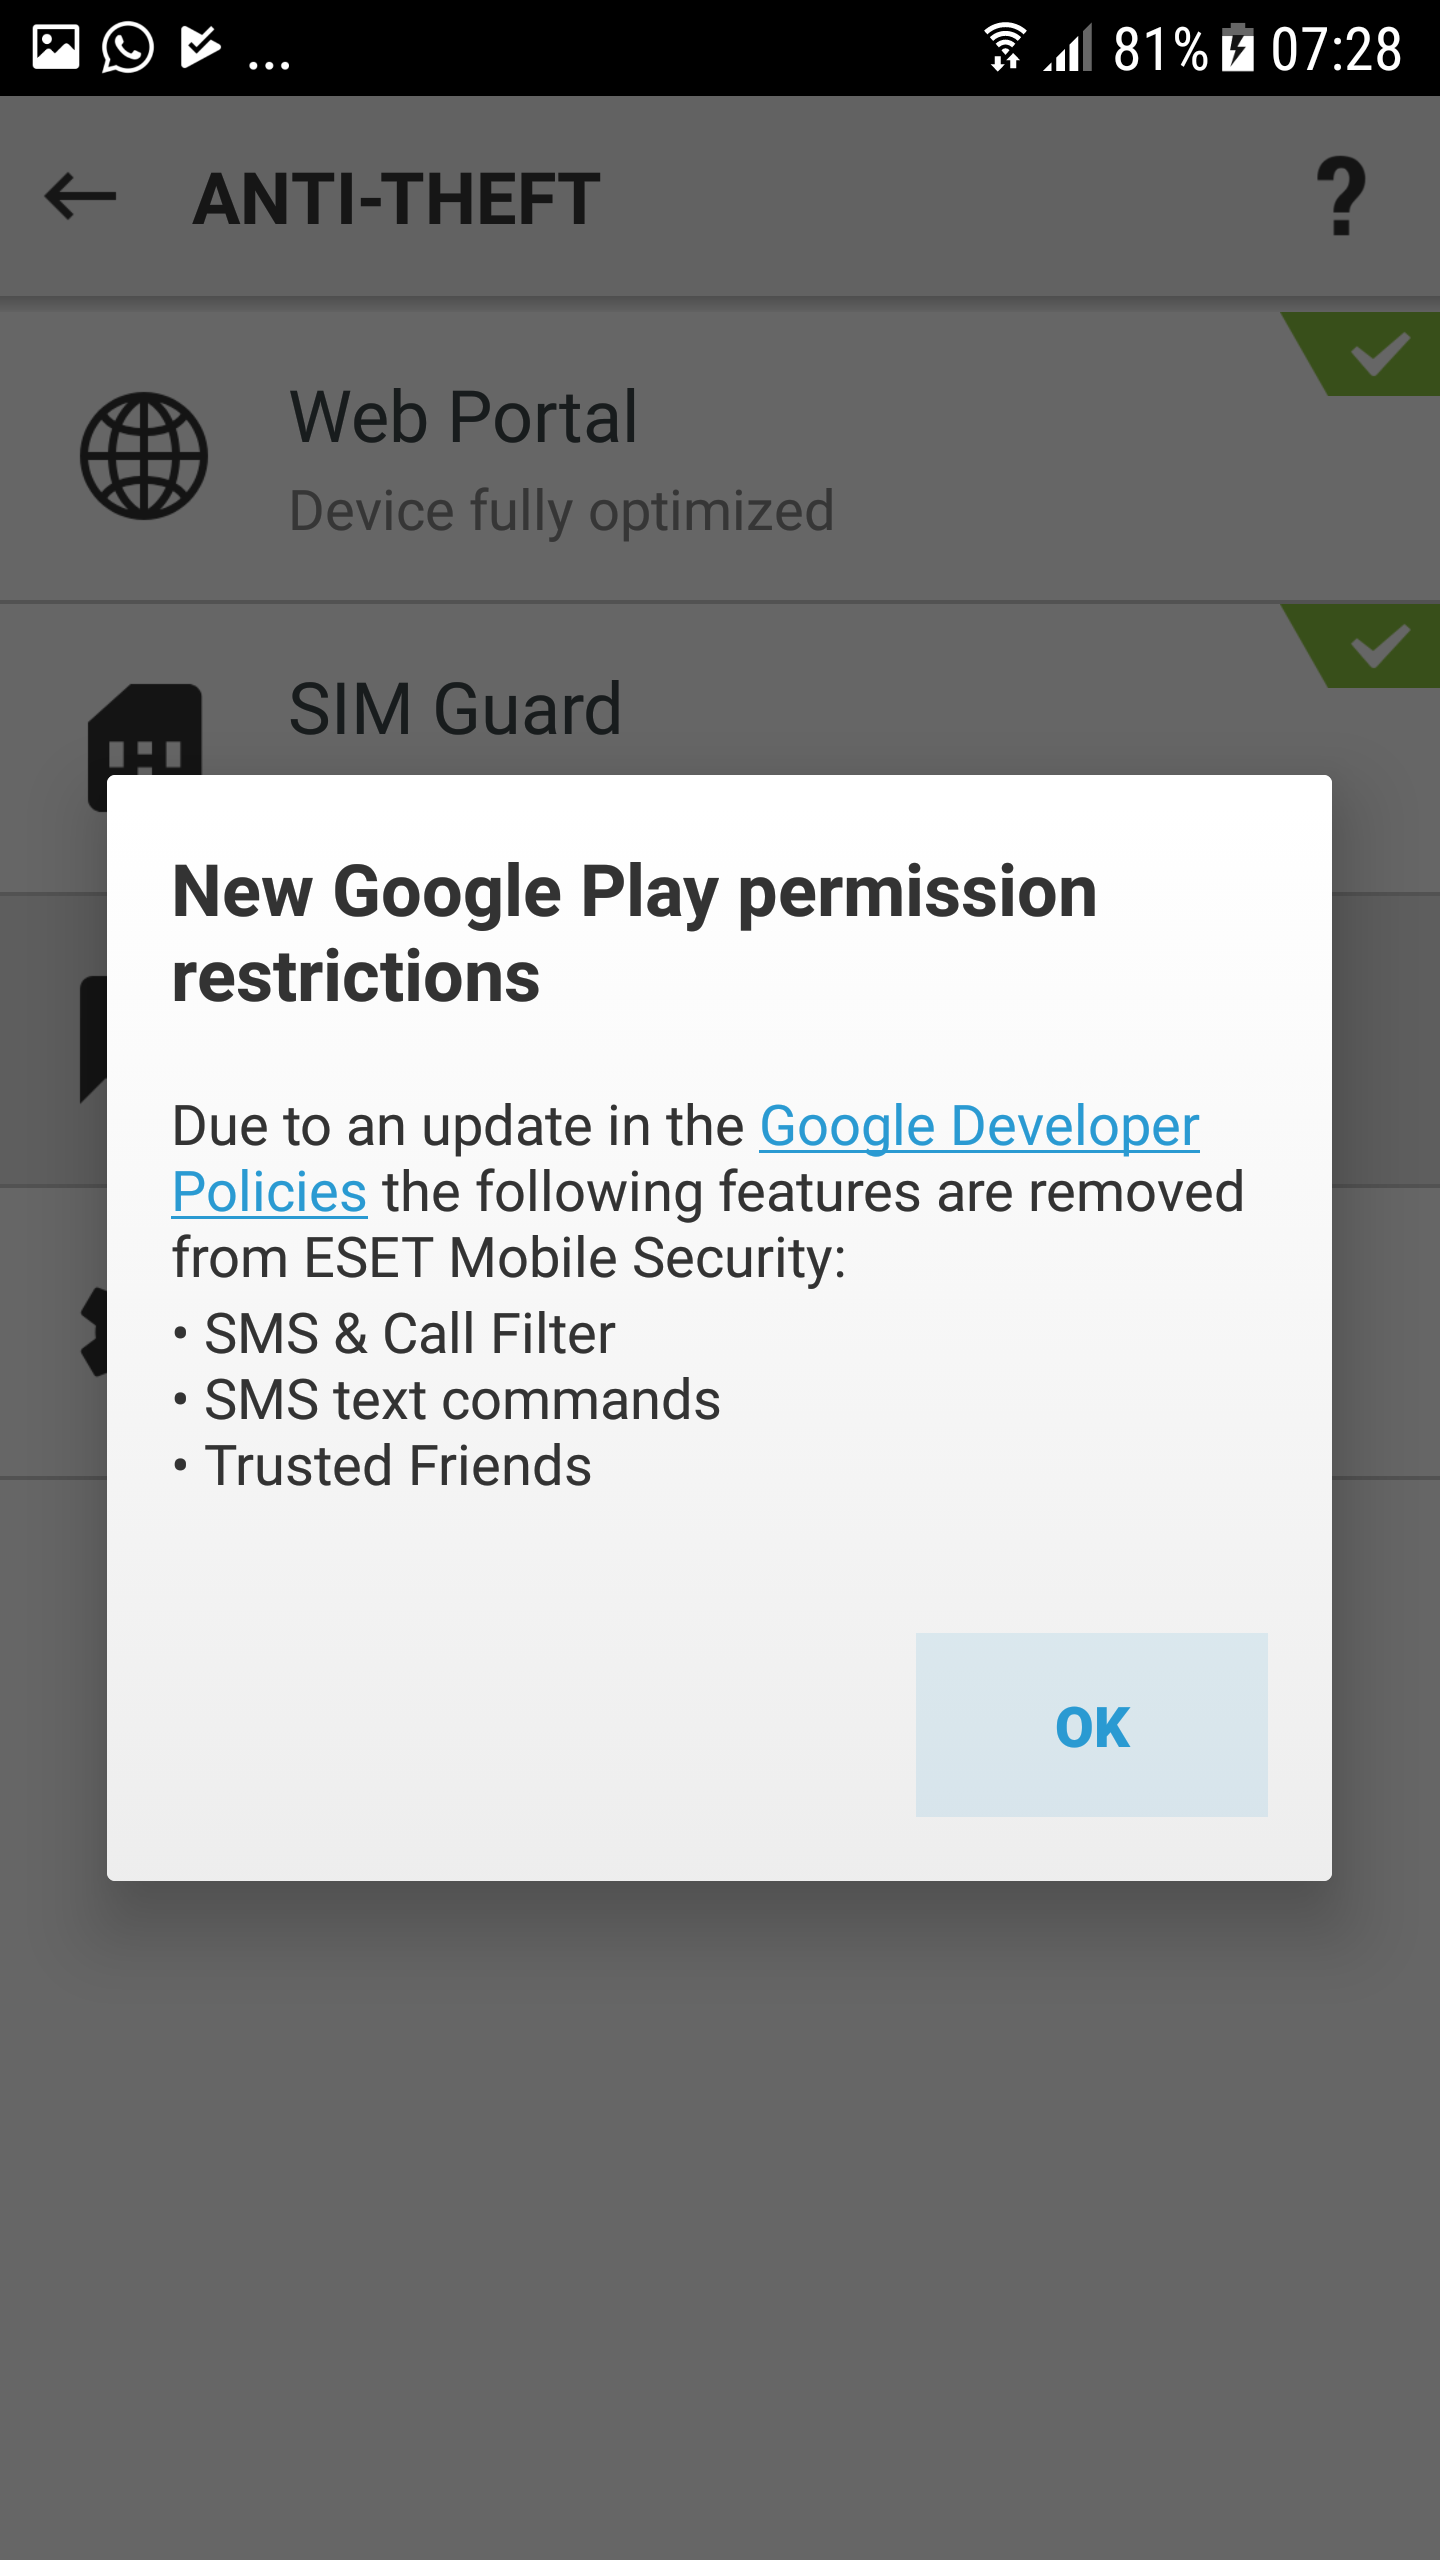 ESET Mobile Security not support SMS & call filter, anti